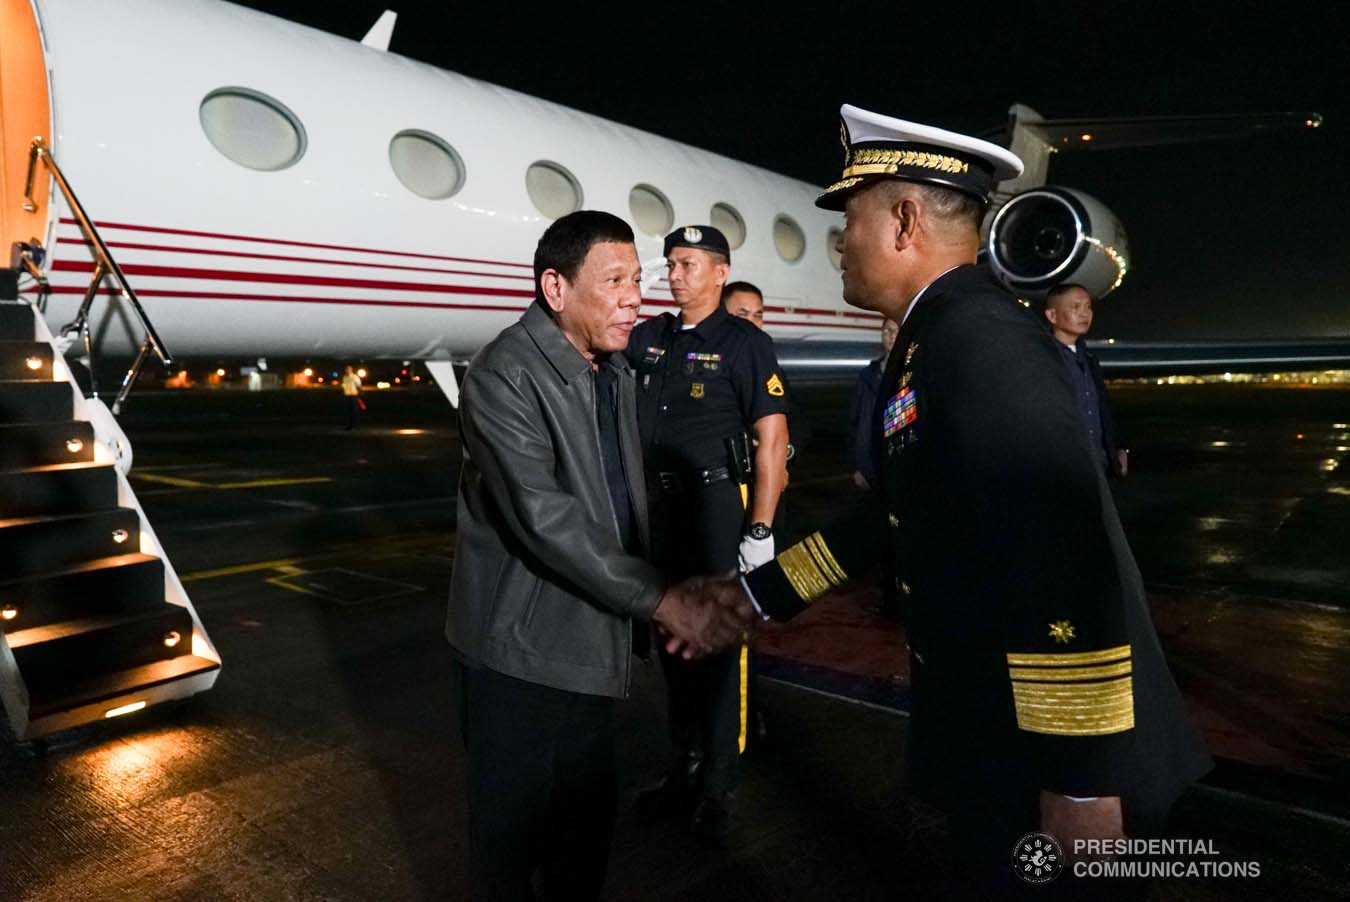 President Rodrigo Roa Duterte is welcomed by a military officer upon his arrival at the Villamor Air Base in Pasay City on September 1, 2019 following his successful official visit to the People's Republic of China. KING RODRIGUEZ/PRESIDENTIAL PHOTO